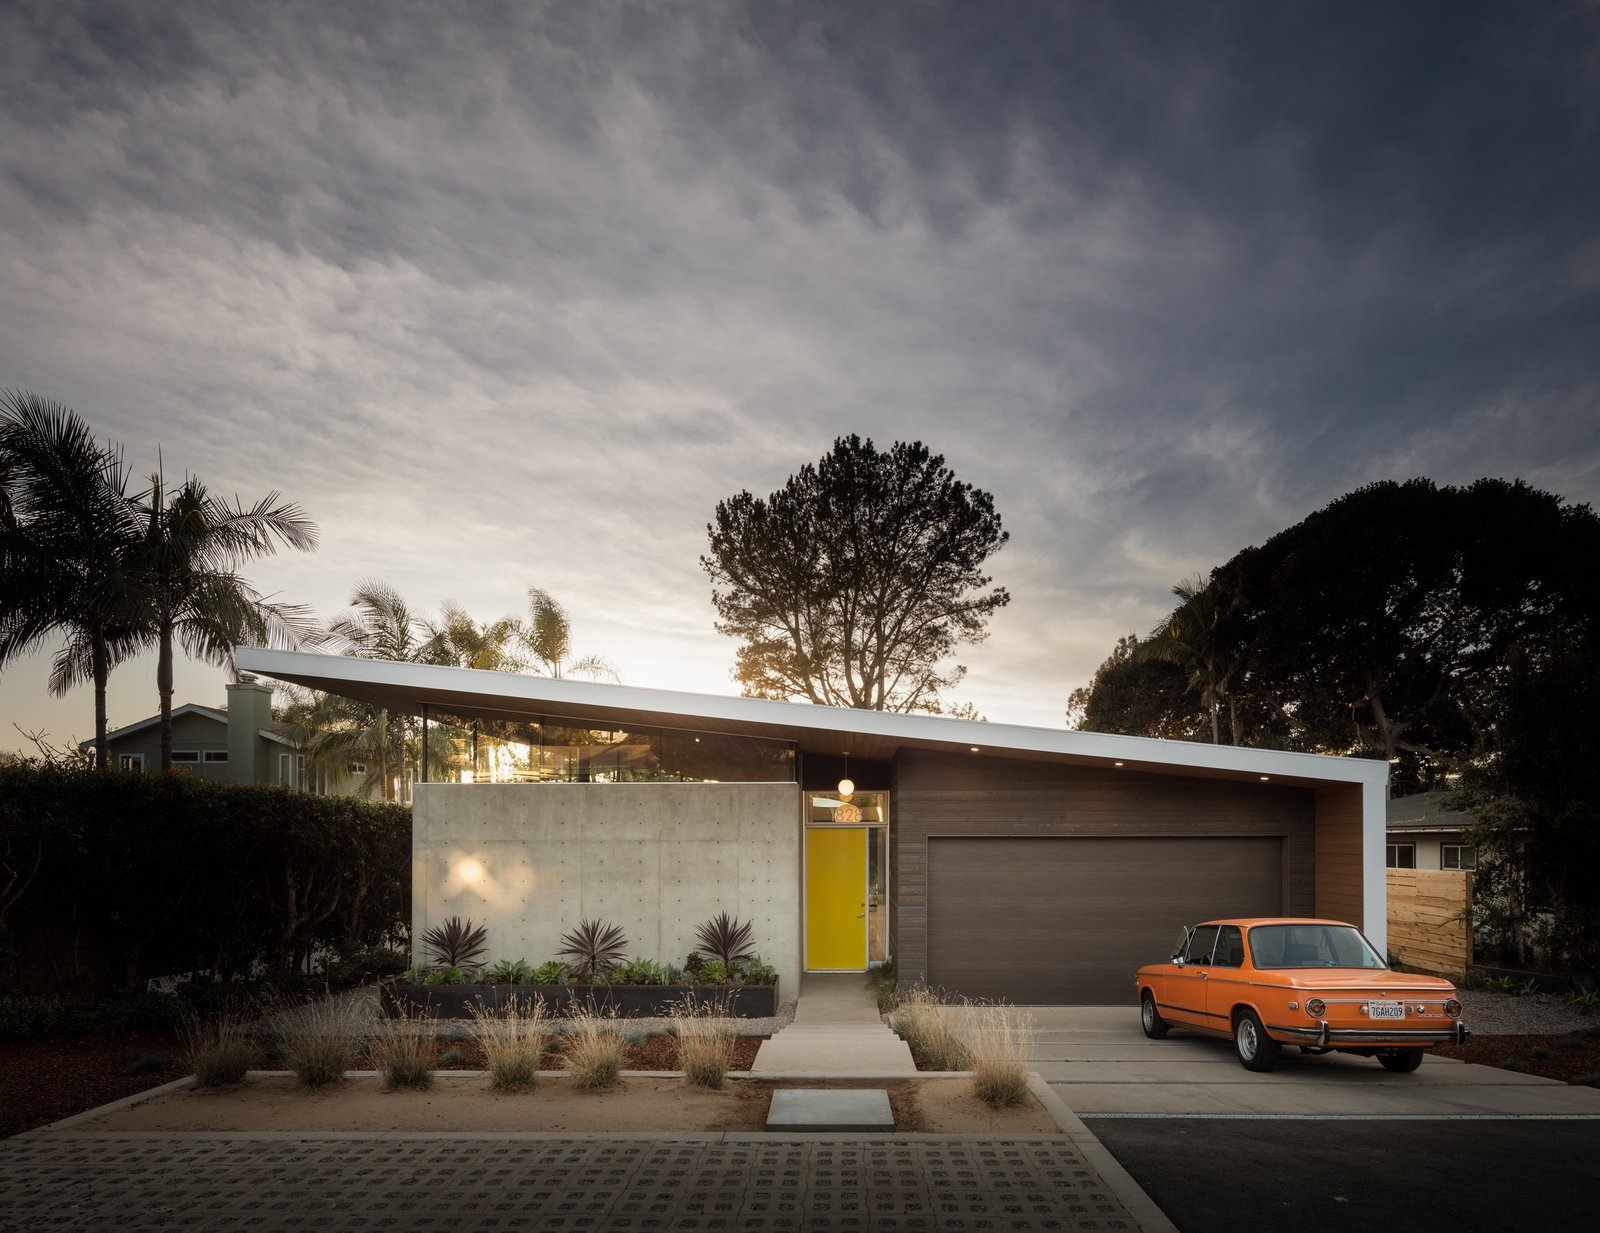 '73 BMW 2002 Tagged: Garage and Attached Garage.  Avocado Acres House by Surfside Projects